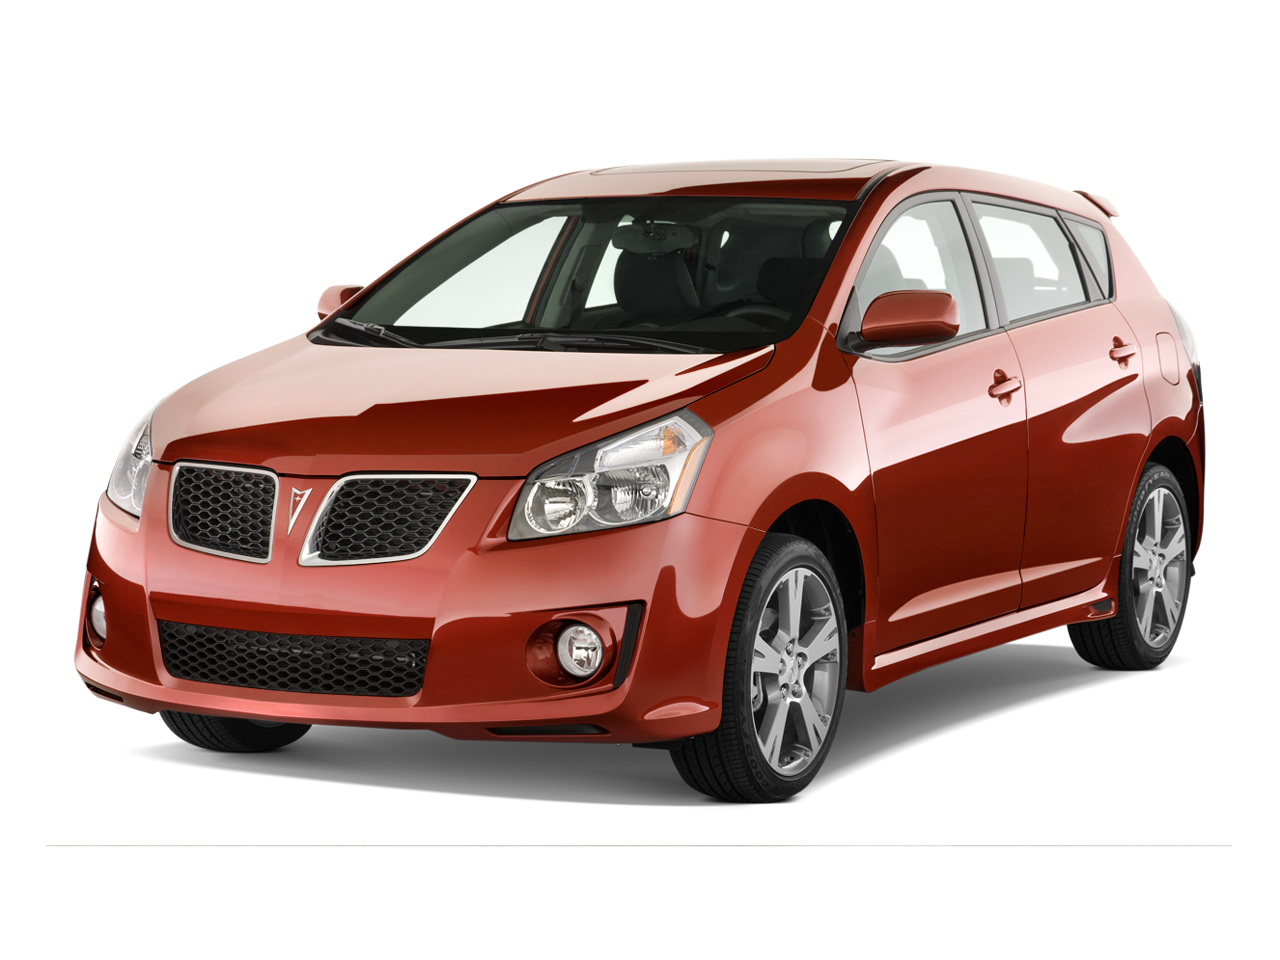 Gm Responds To Toyota S Pontiac Vibe Recall